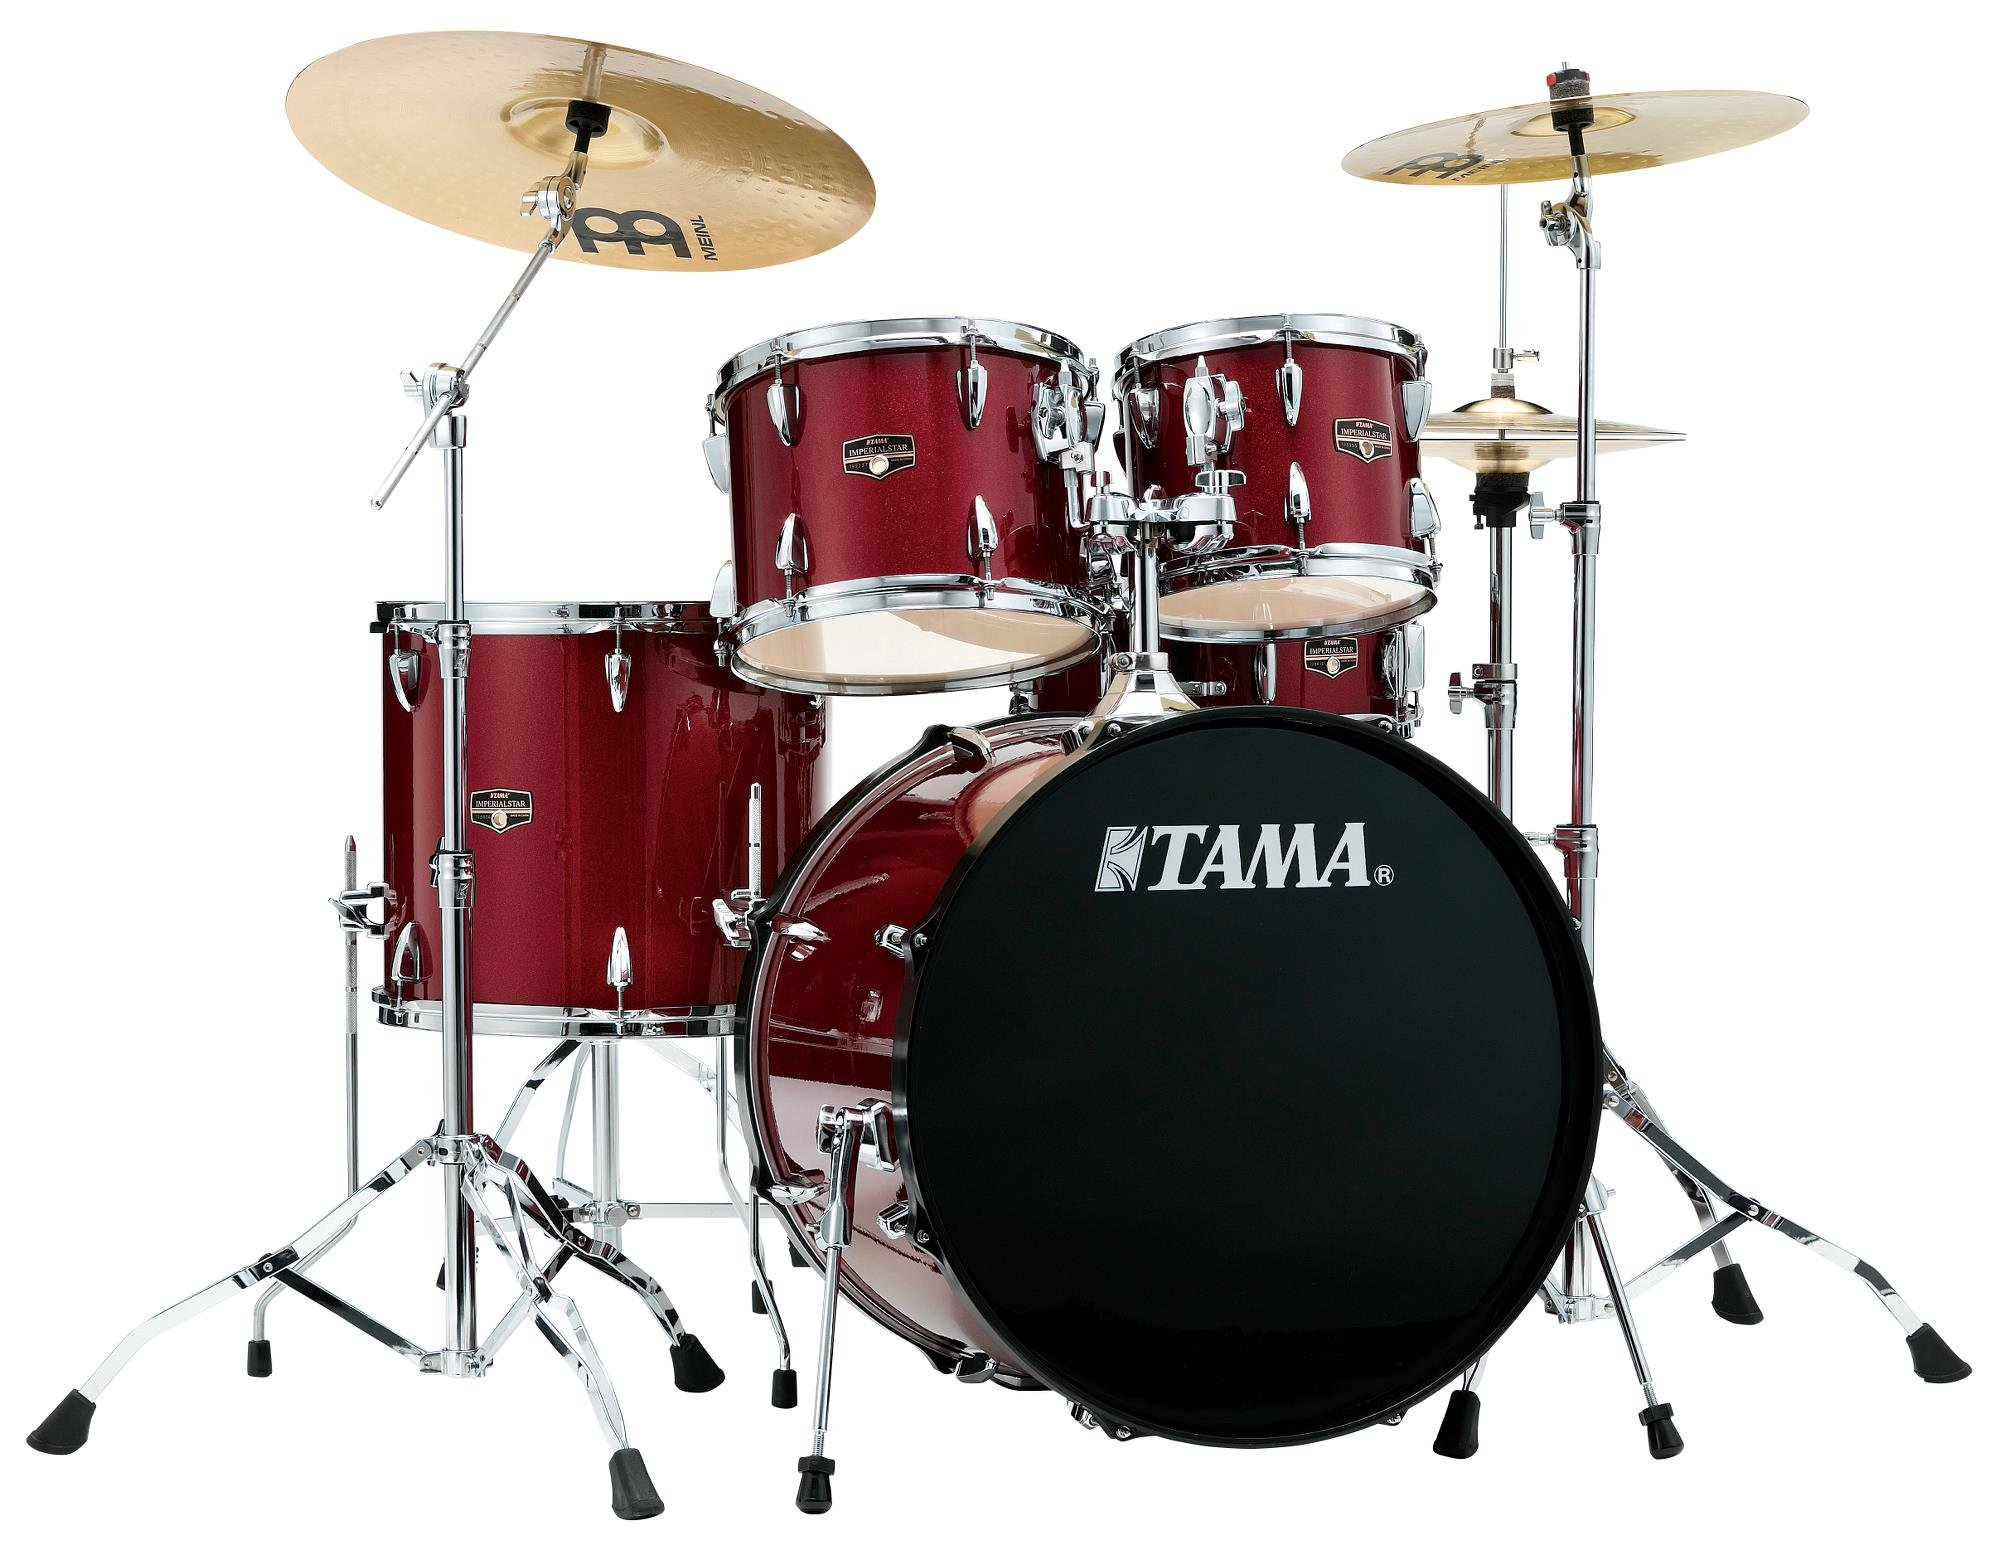 TAMA Imperialstar 5pc complete kit with Meinl HCS cymbals in Candy Apple Mist finish